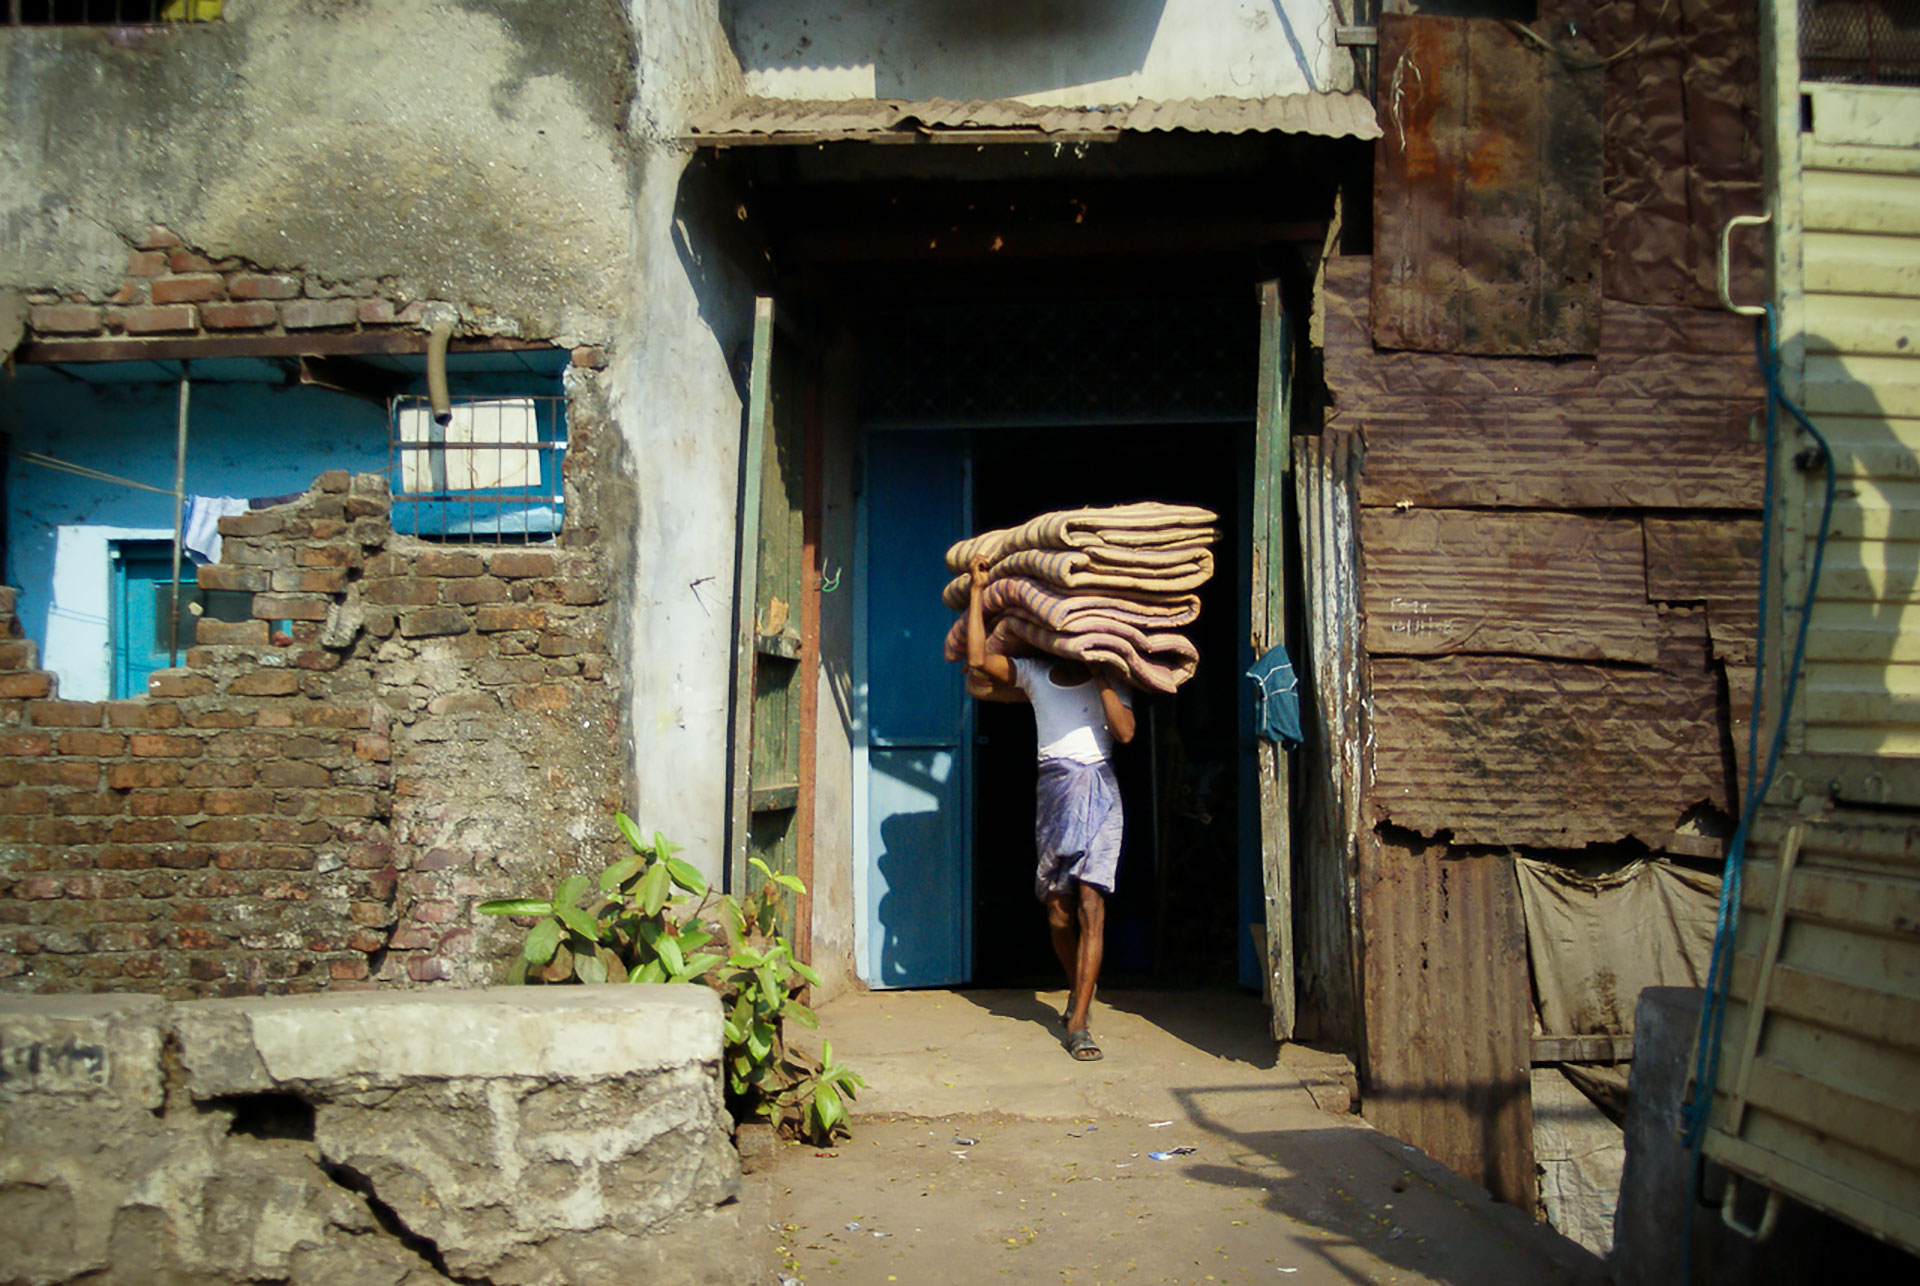 A young man carrying blankets on his head in Dharavi, India.